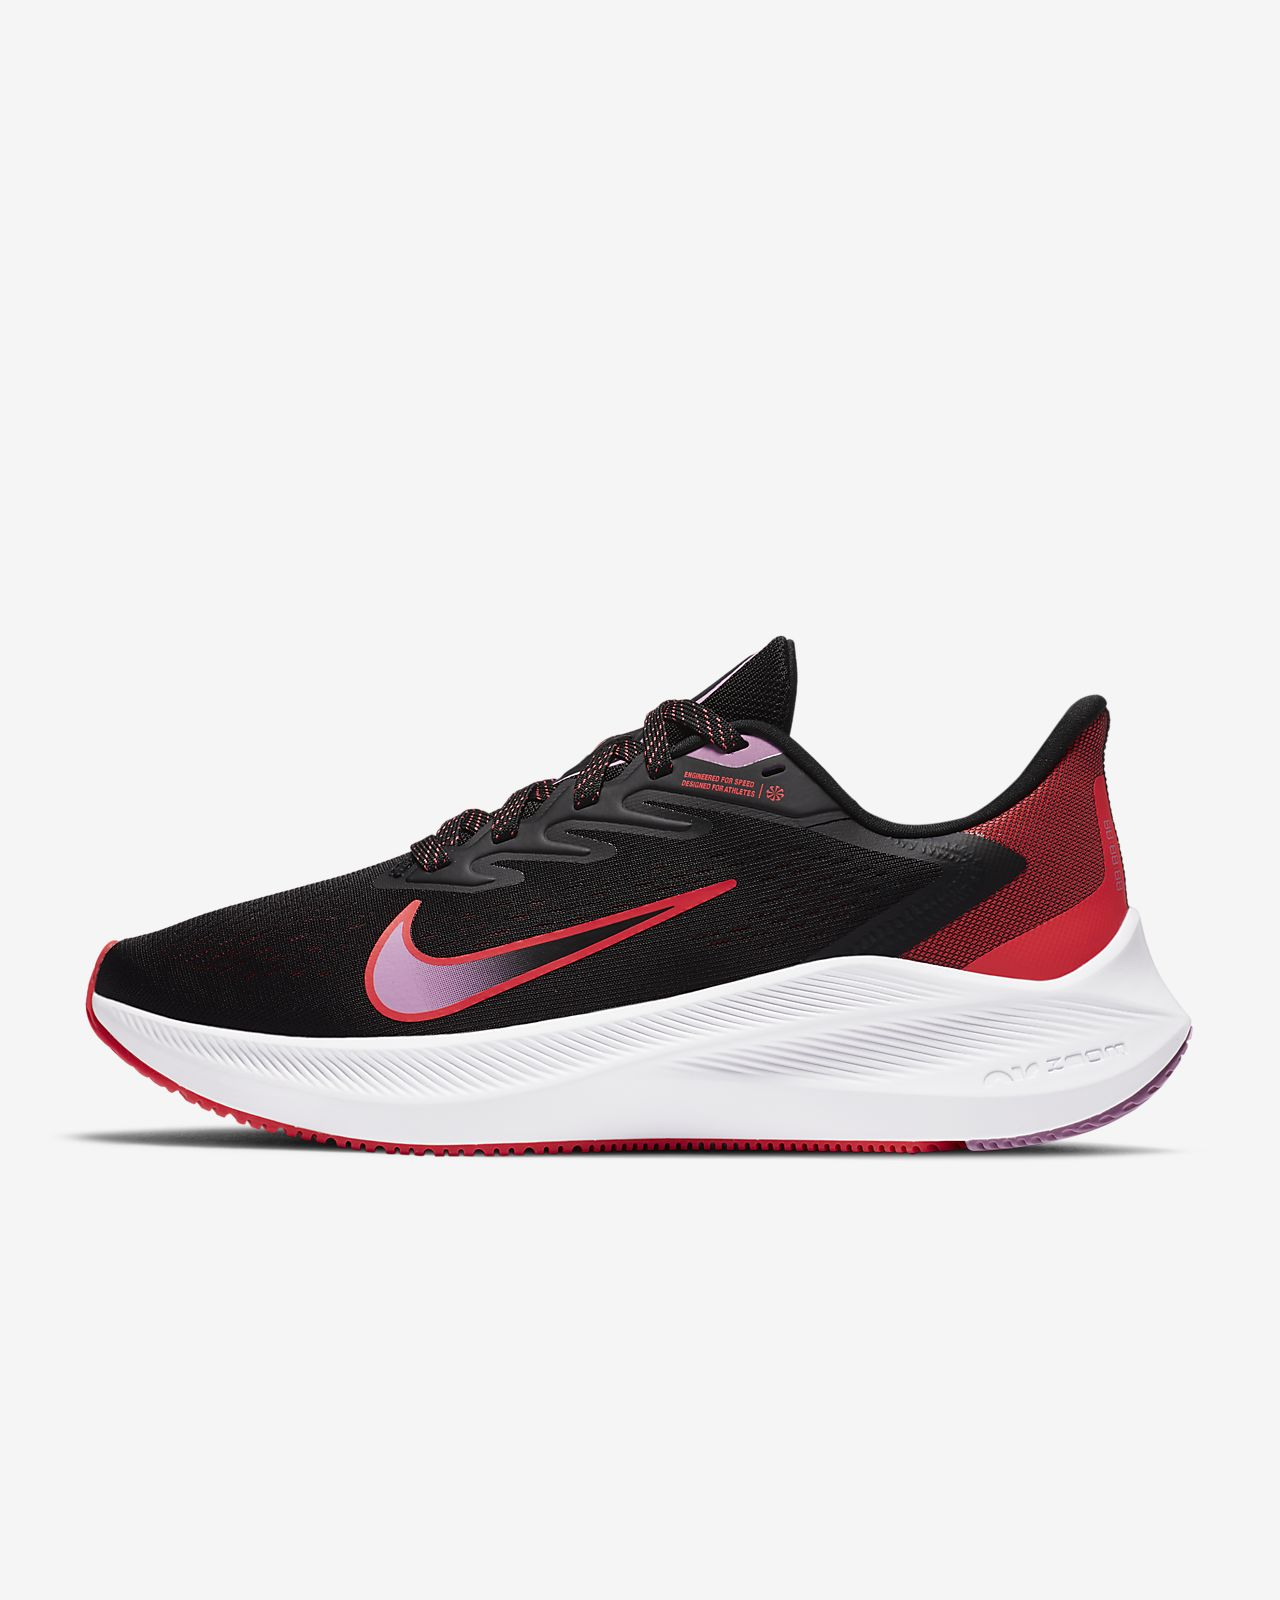 Nike Air Zoom Winflo 7 女款跑鞋